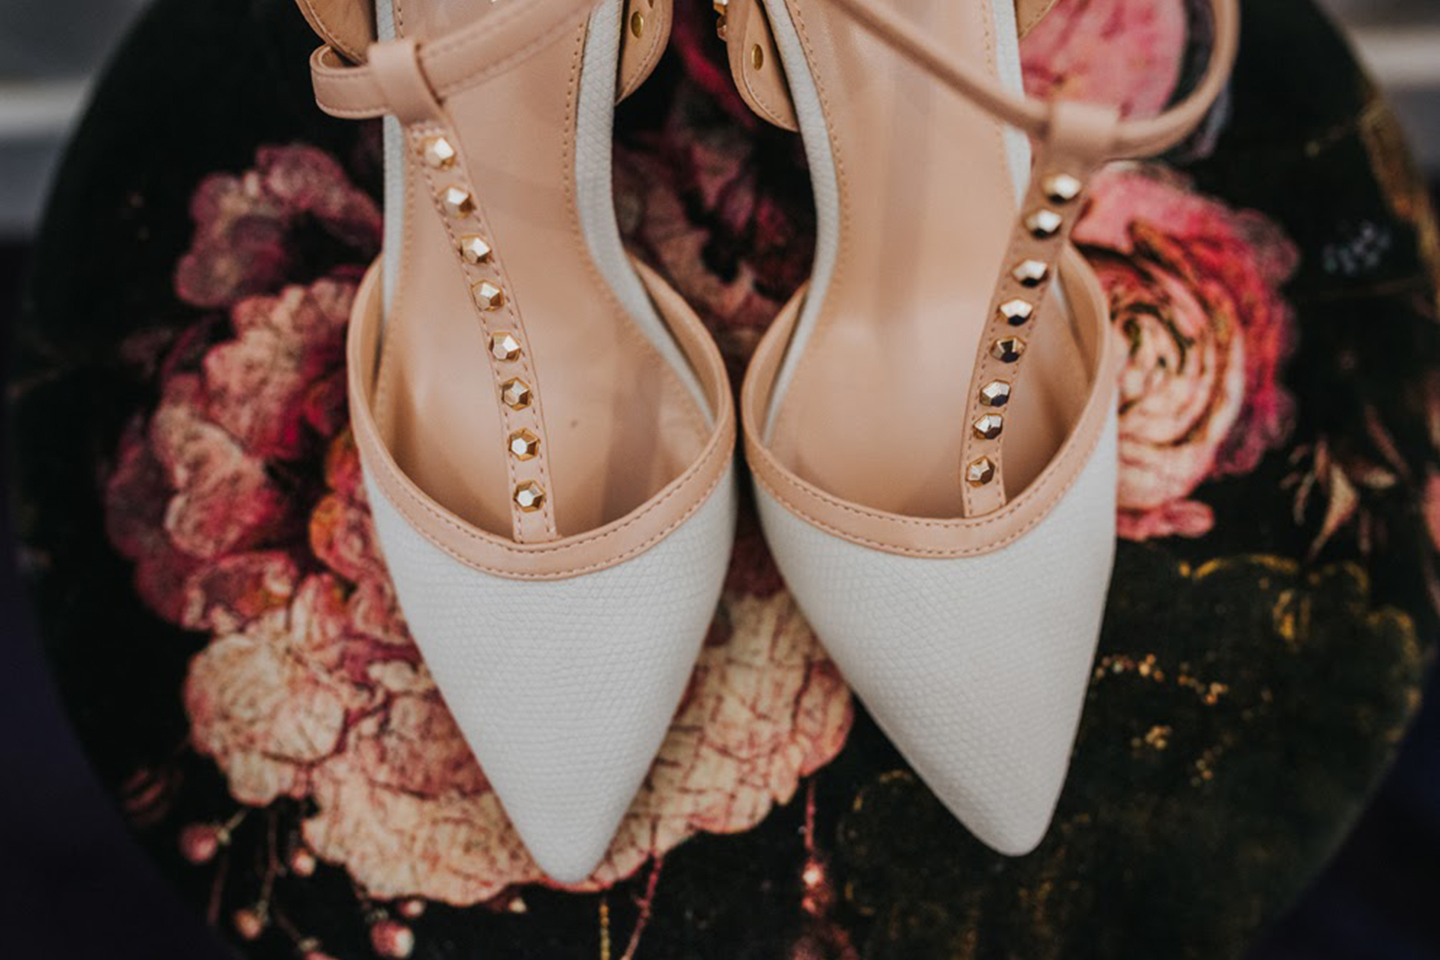 The bride wore Kurt Geiger wedding shoes for her wedding day at Bassmead Manor Barns